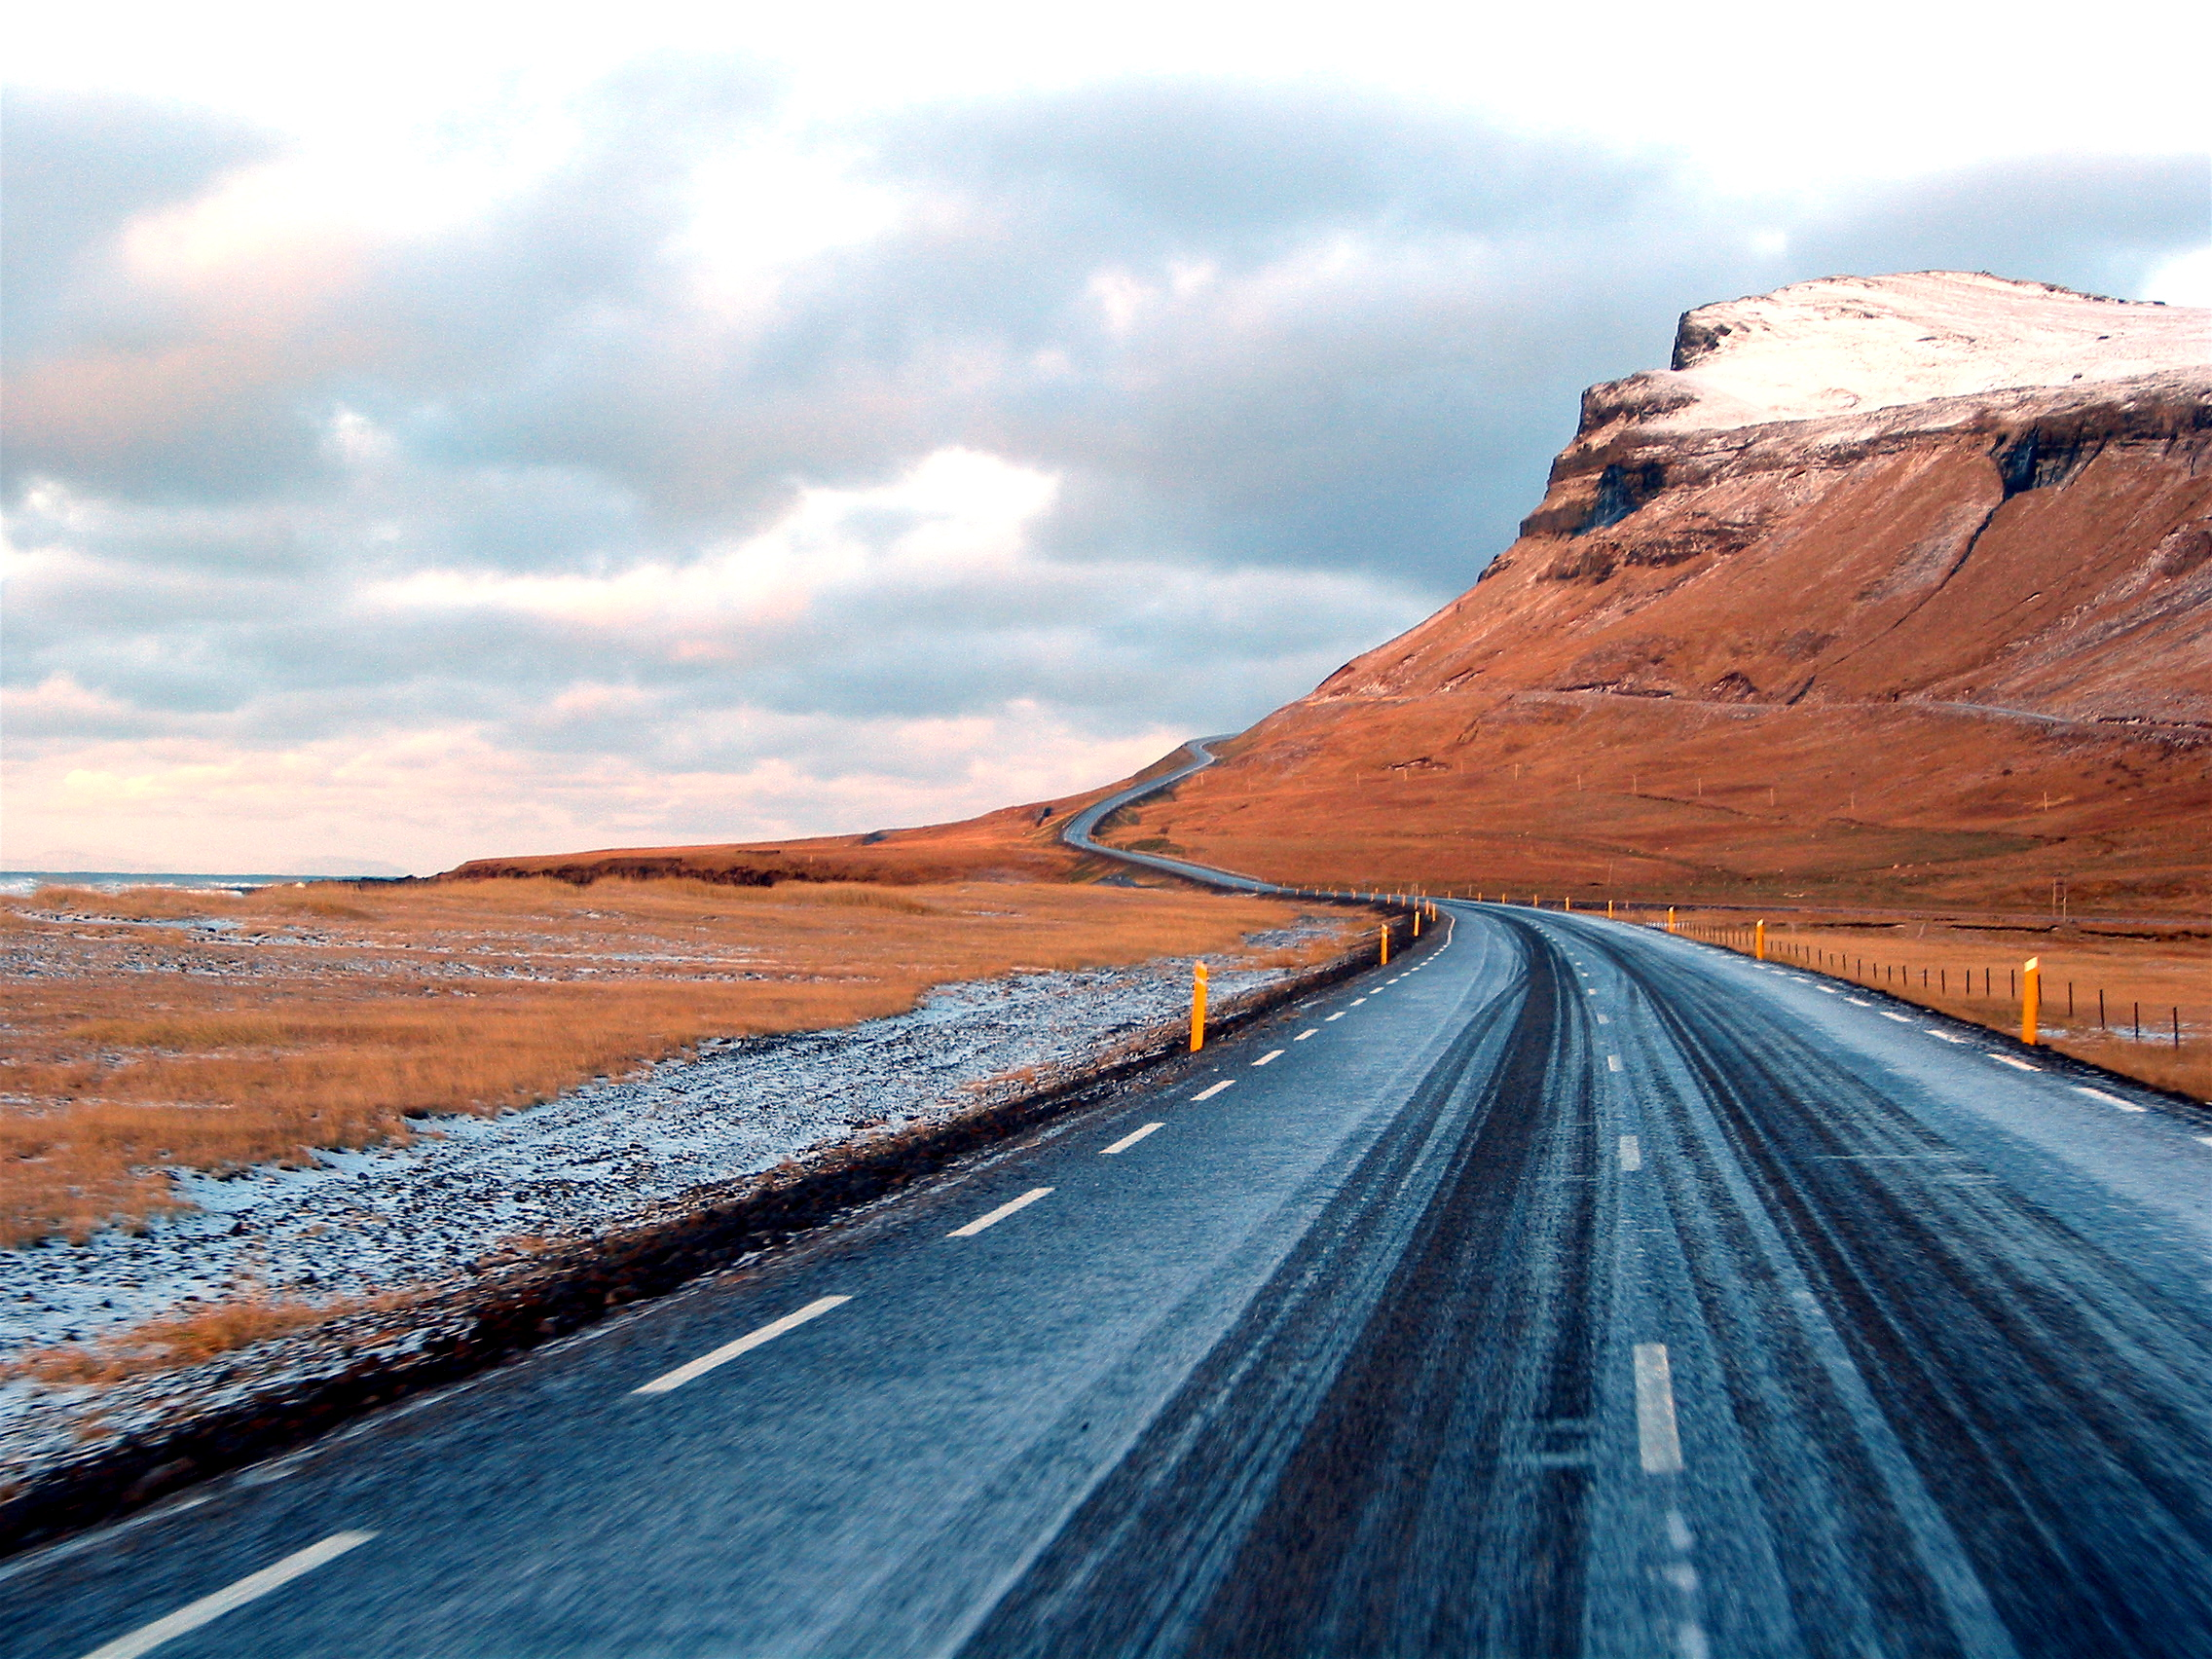 Icelandic Road Freezing, 2007  This image is a good example of using a vanishing point to lead the viewer's eye directly into the center of the composition.  It also has a bit of mystery as one wonders what is over the hill in the distance.